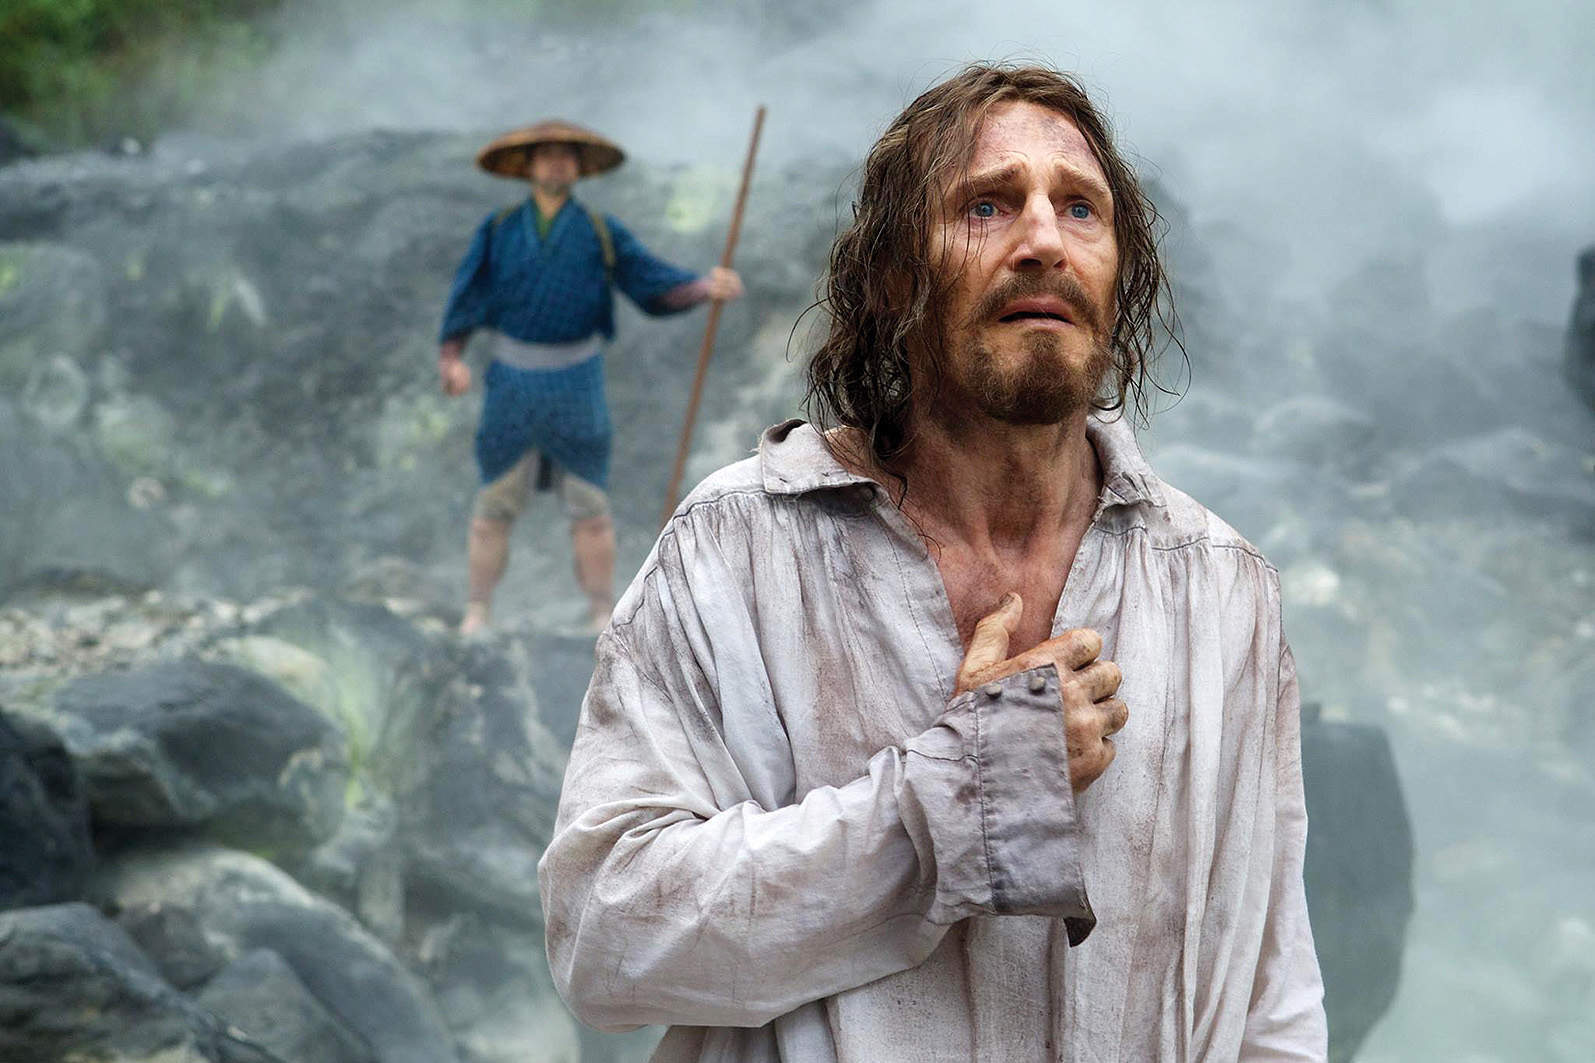 Martin Scorsese's new passion project, Silence, shows the danger of confusing faith with folly